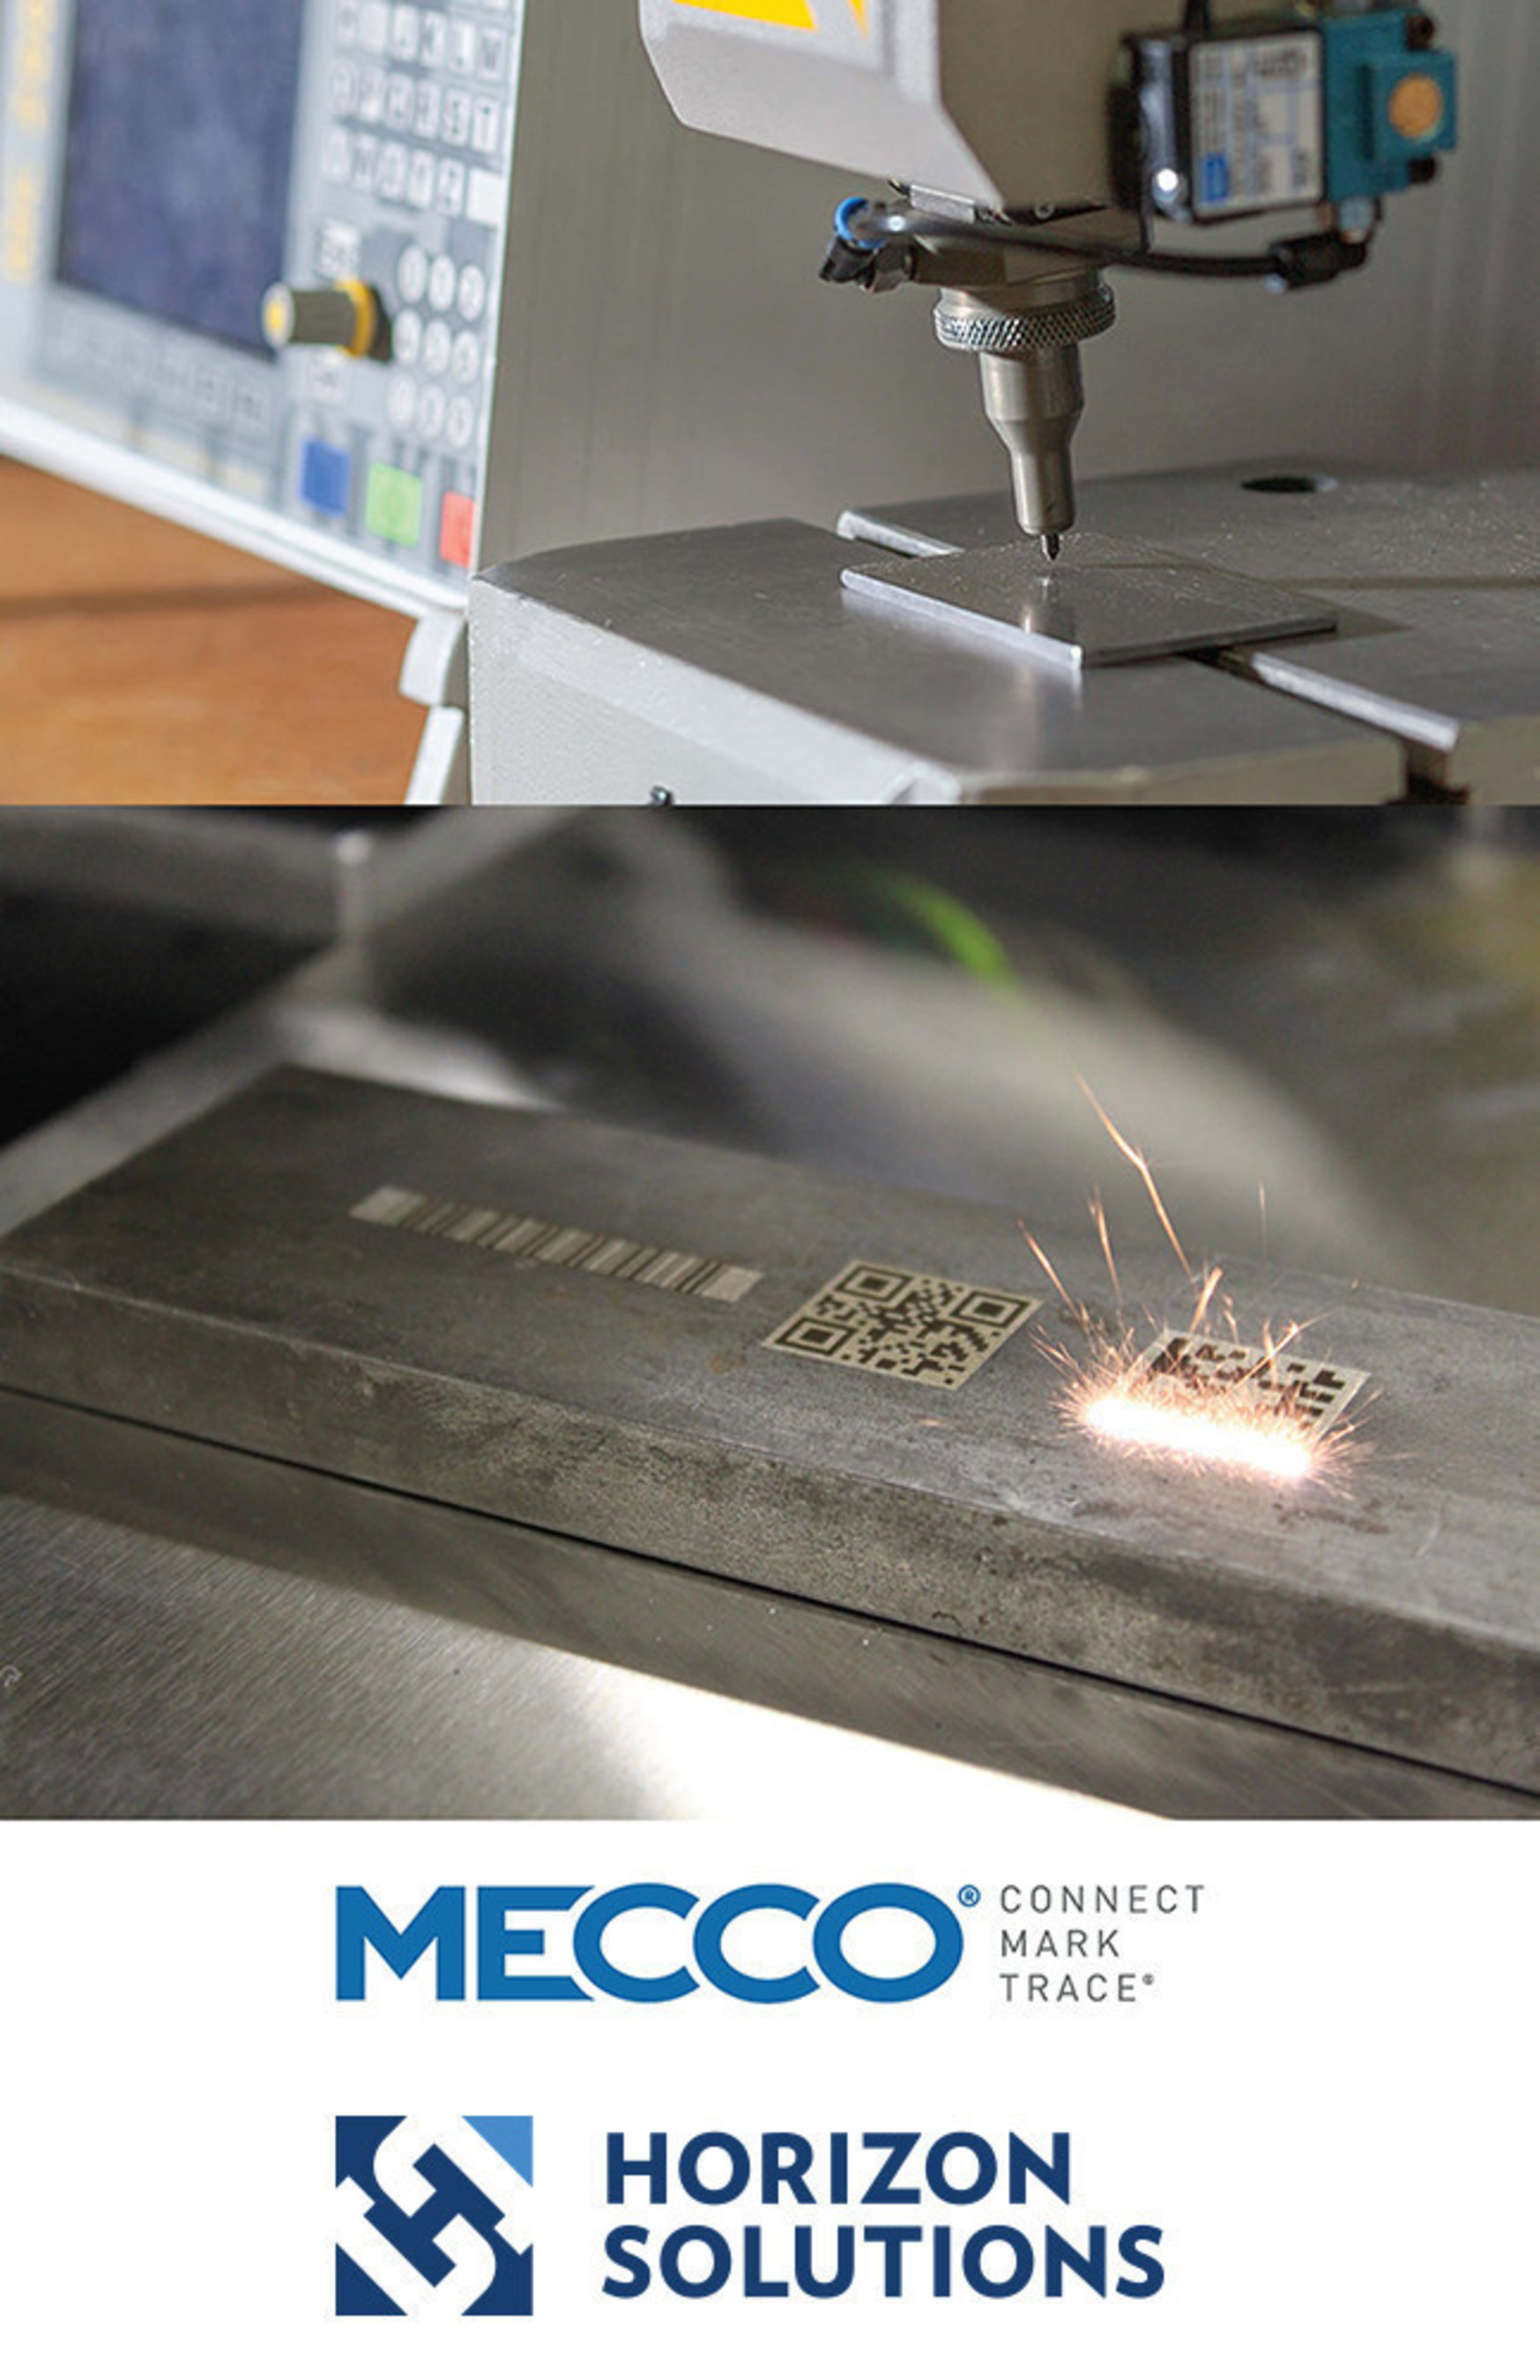 Horizon Solutions will distribute the MECCO(R) Laser and Dot Peen Marking Systems in upstate New York and northern New England.